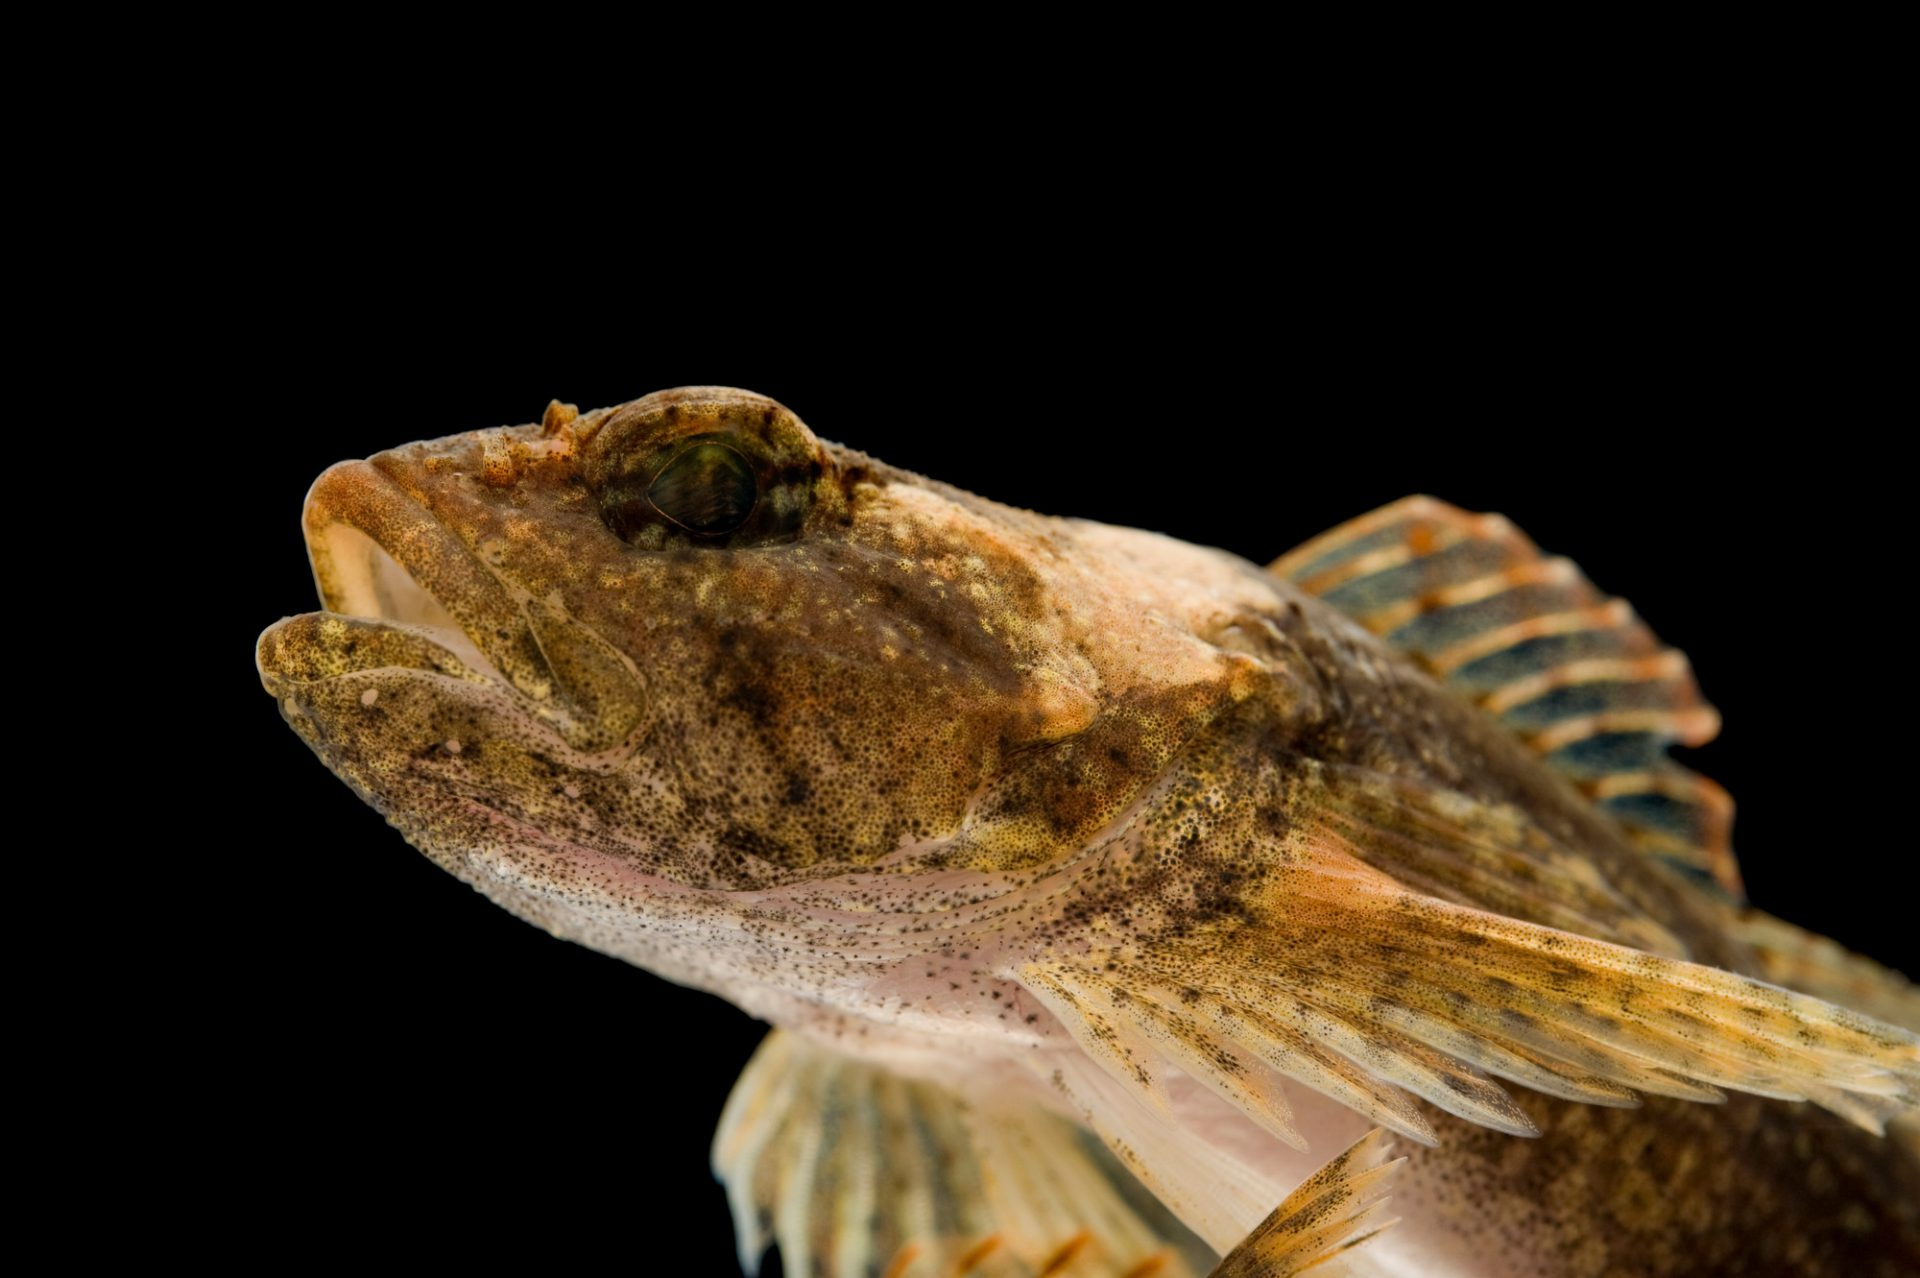 Picture of a banded sculpin (Cottus carolinae) taken from the Conasauga River near Conasauga, Tennessee.